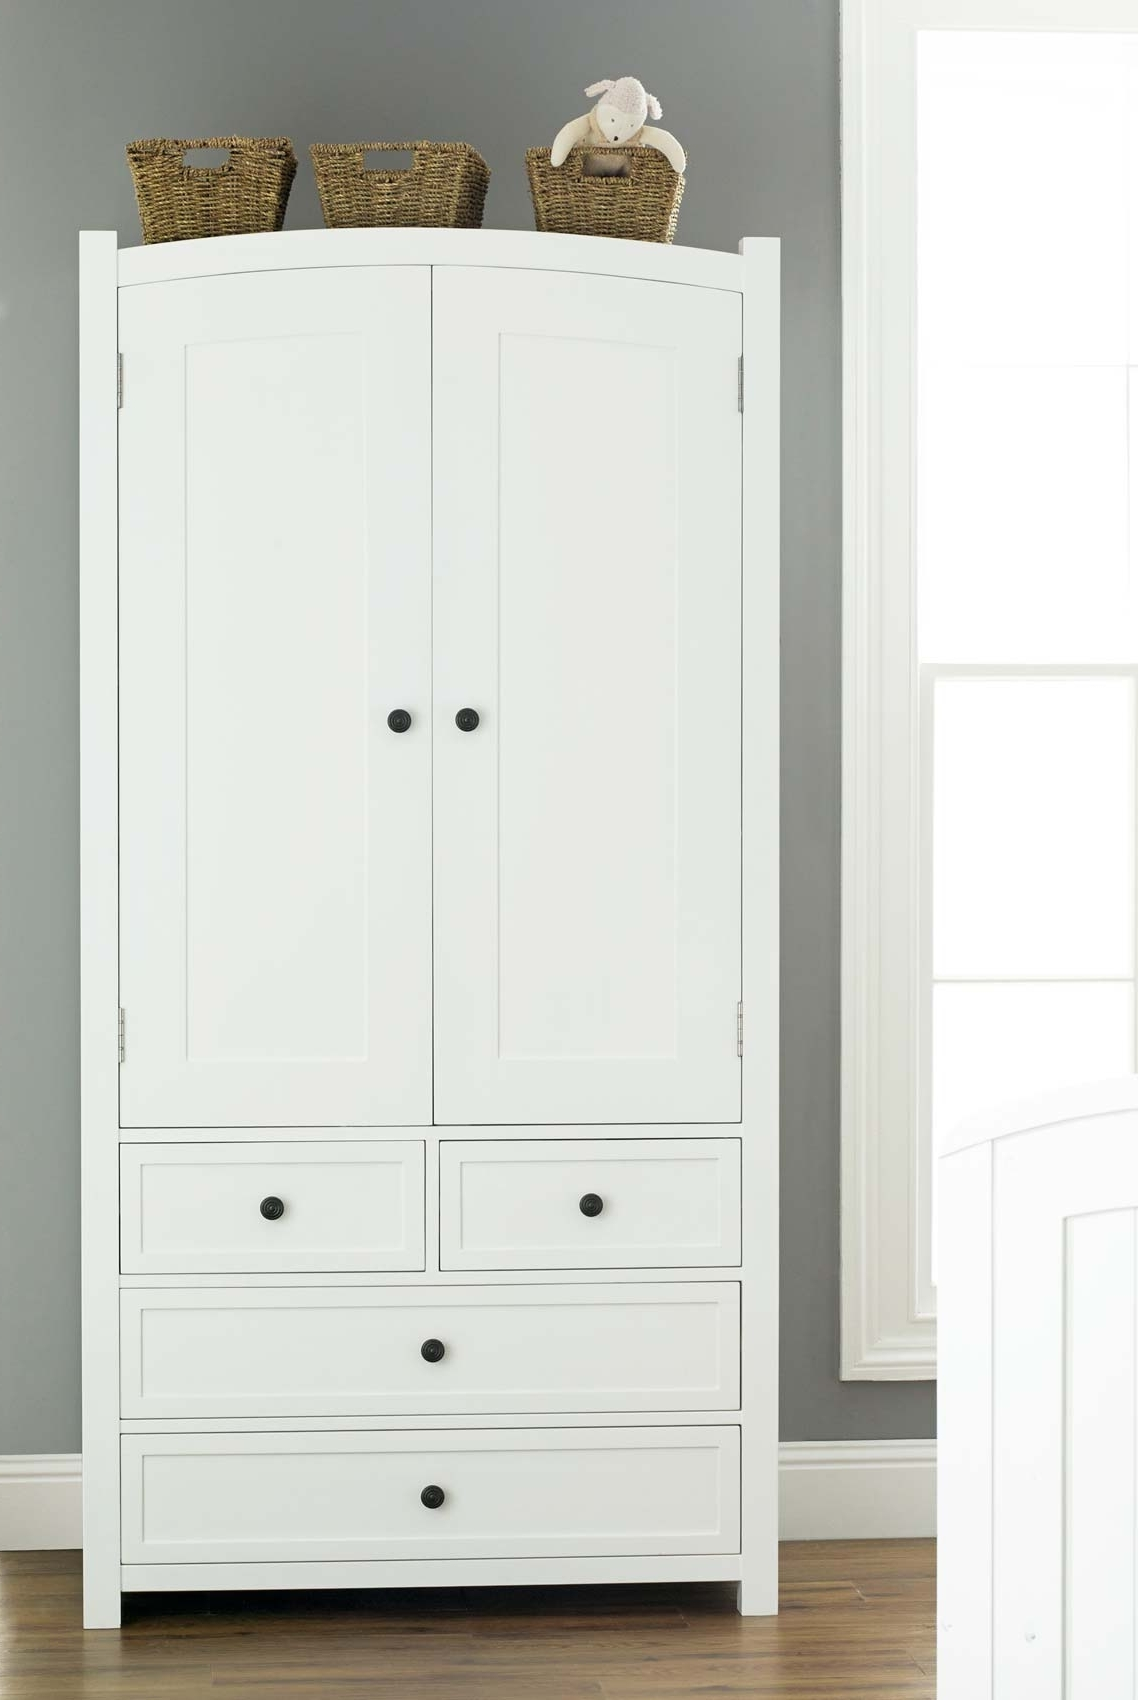 White Wicker Wardrobes With Widely Used Ceiling To Floor White Wooden Wardrobe Closet With Ladder Shelves (View 12 of 15)